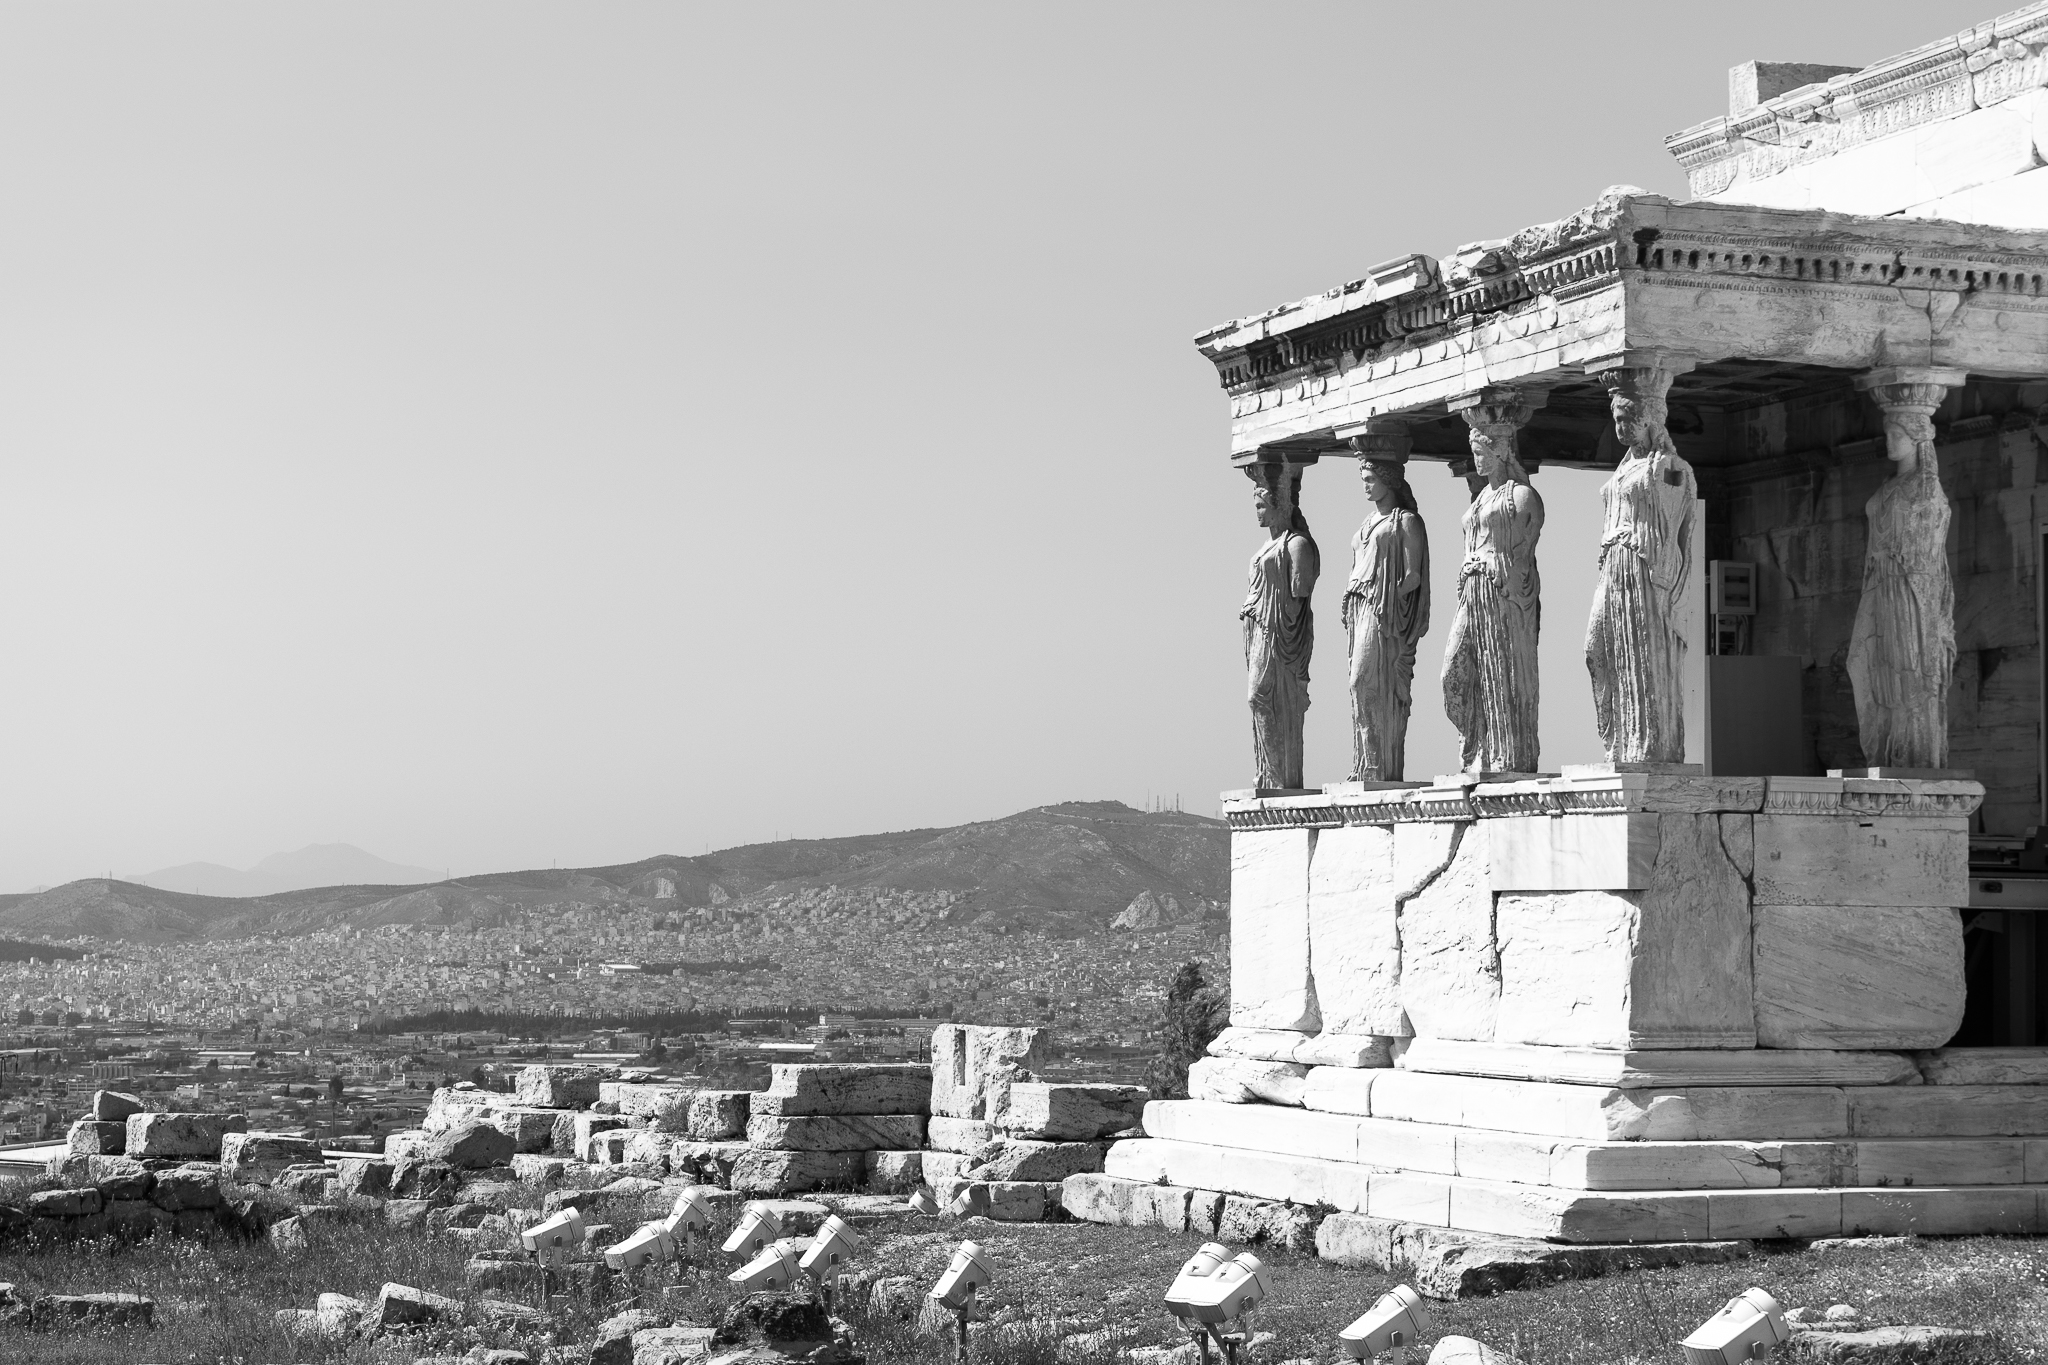 Located in front of the Parthenon and in the southern part of the Erechtheum, the Porch of the Caryatids consists of six columns of more than two meters height in the shape of women who are called caryatids. These are said to have collaborated with the Persian invaders during the 5th century BC. thus metaphorically they are made to carry the weight of the temple.